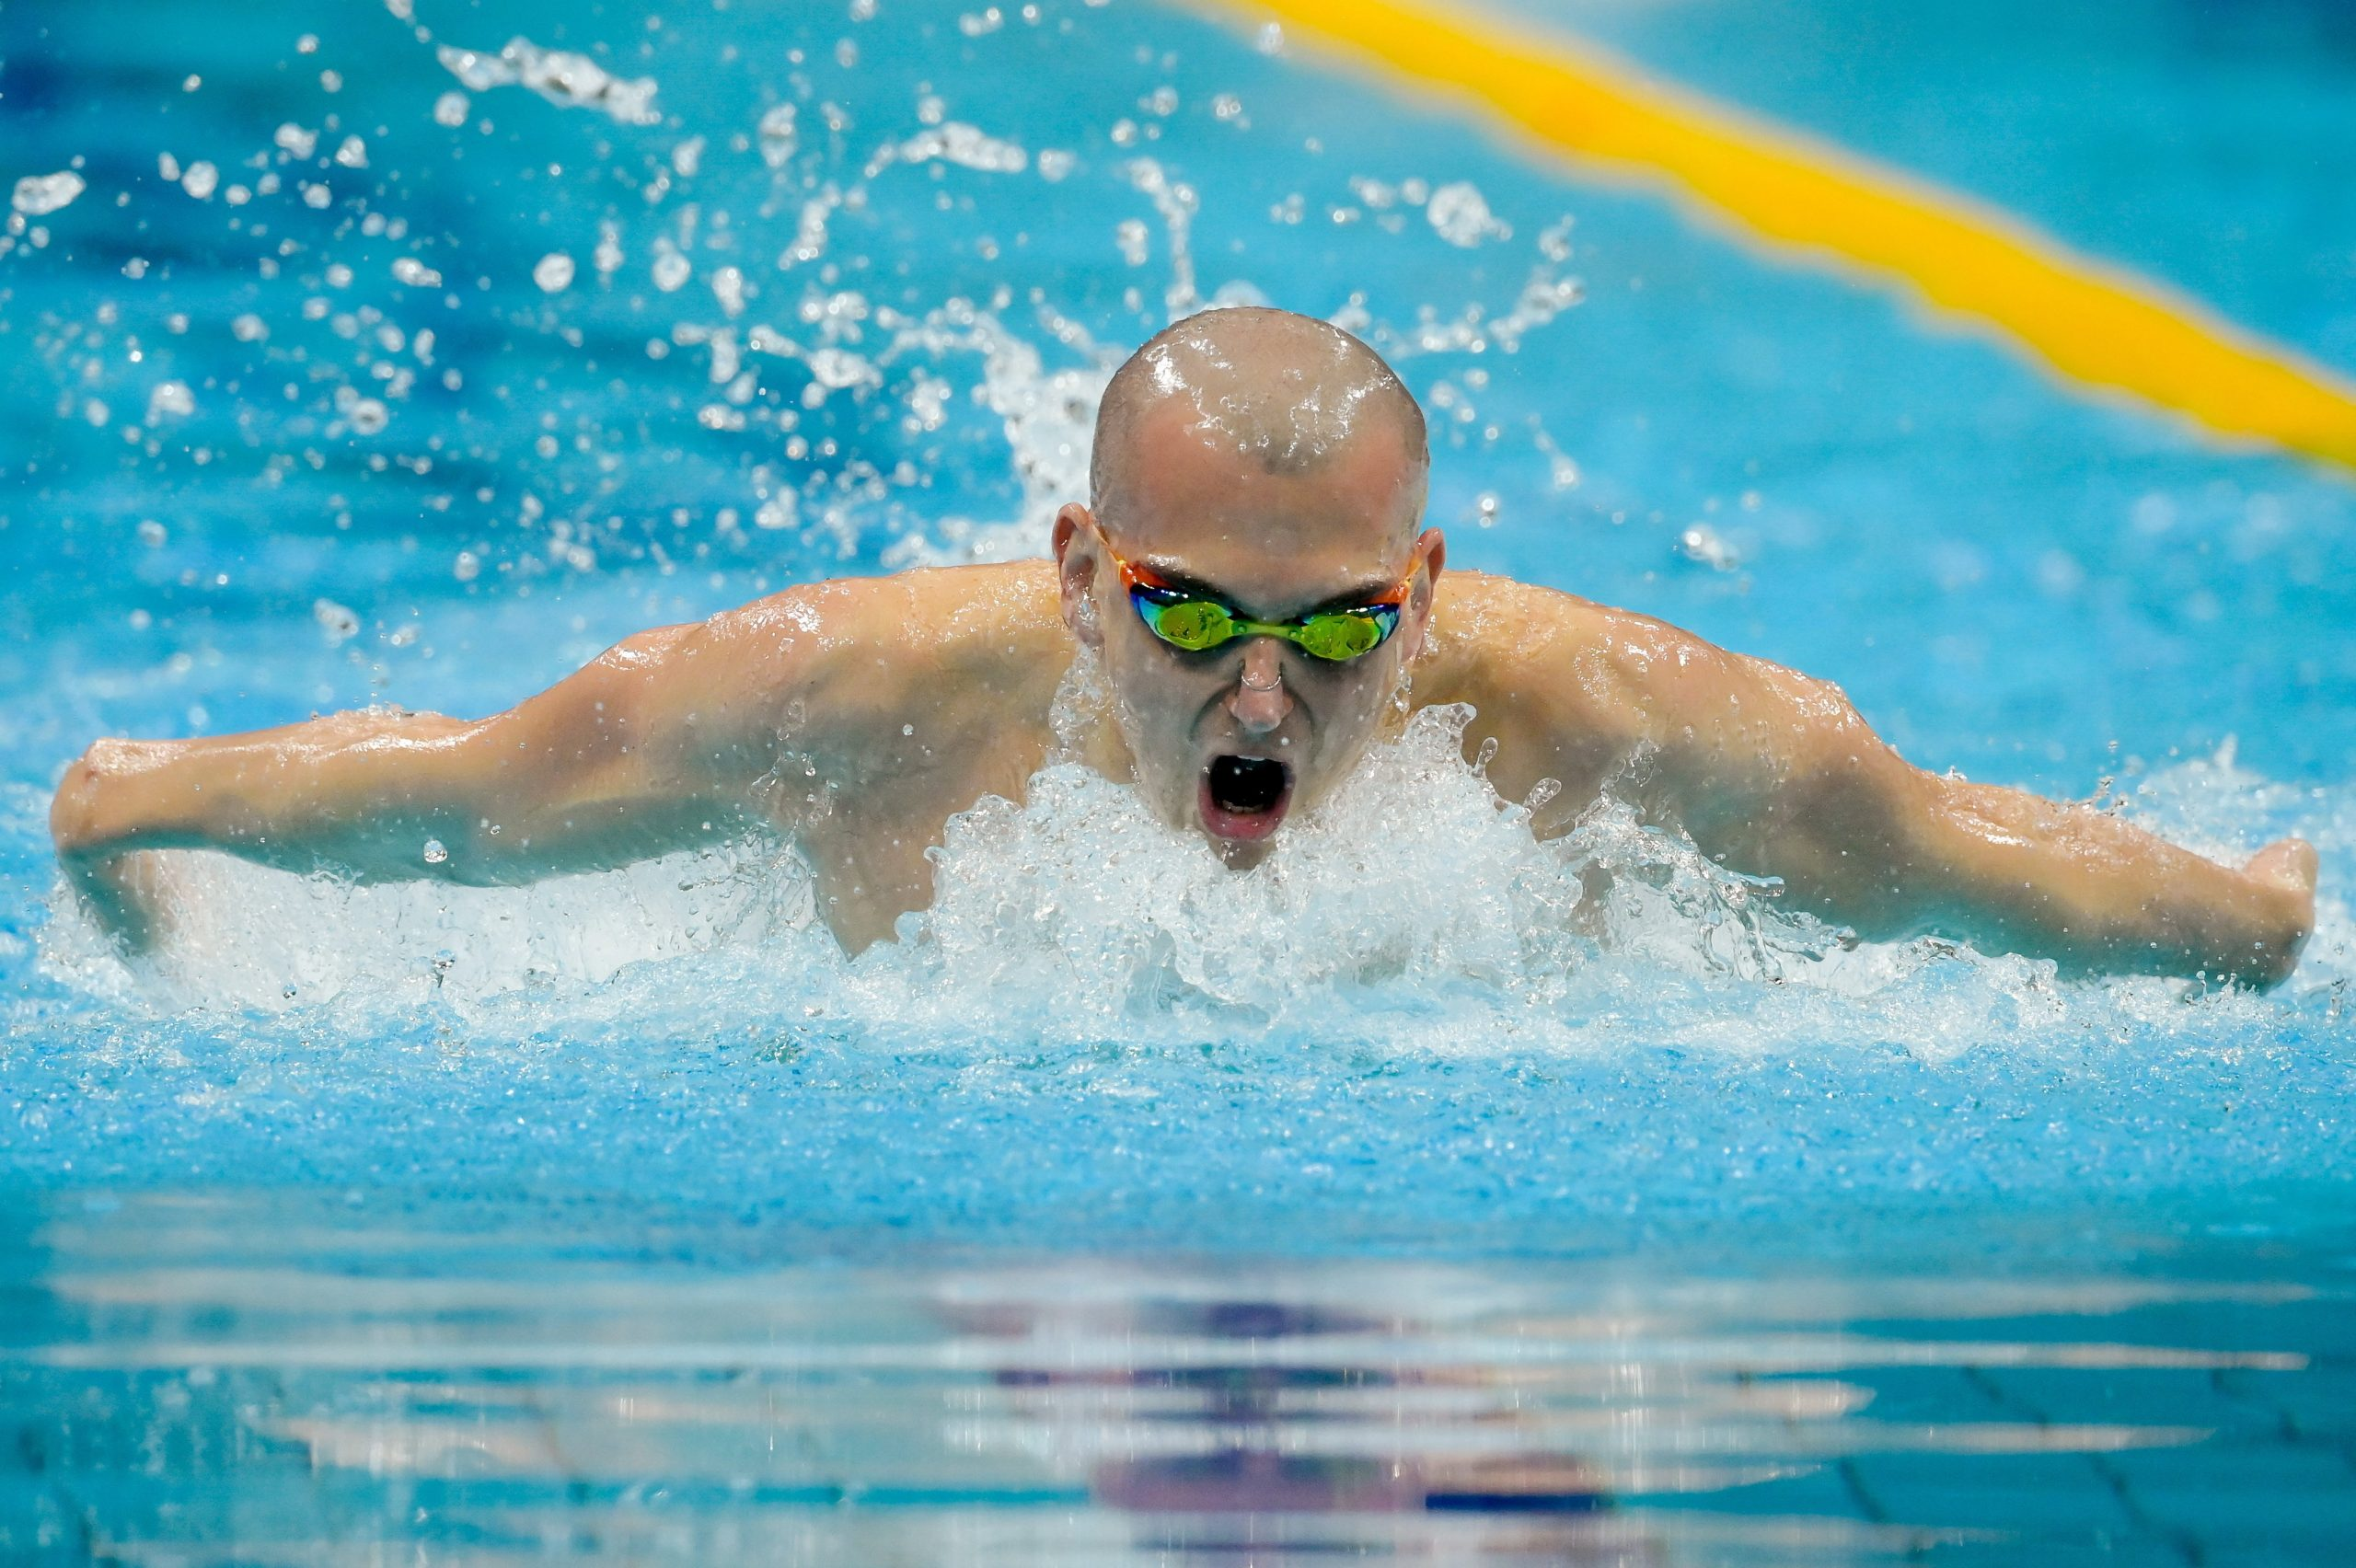 Six-time Olympic Medalist Swimmer László Cseh Decides to Compete in Tokyo for the Last Time